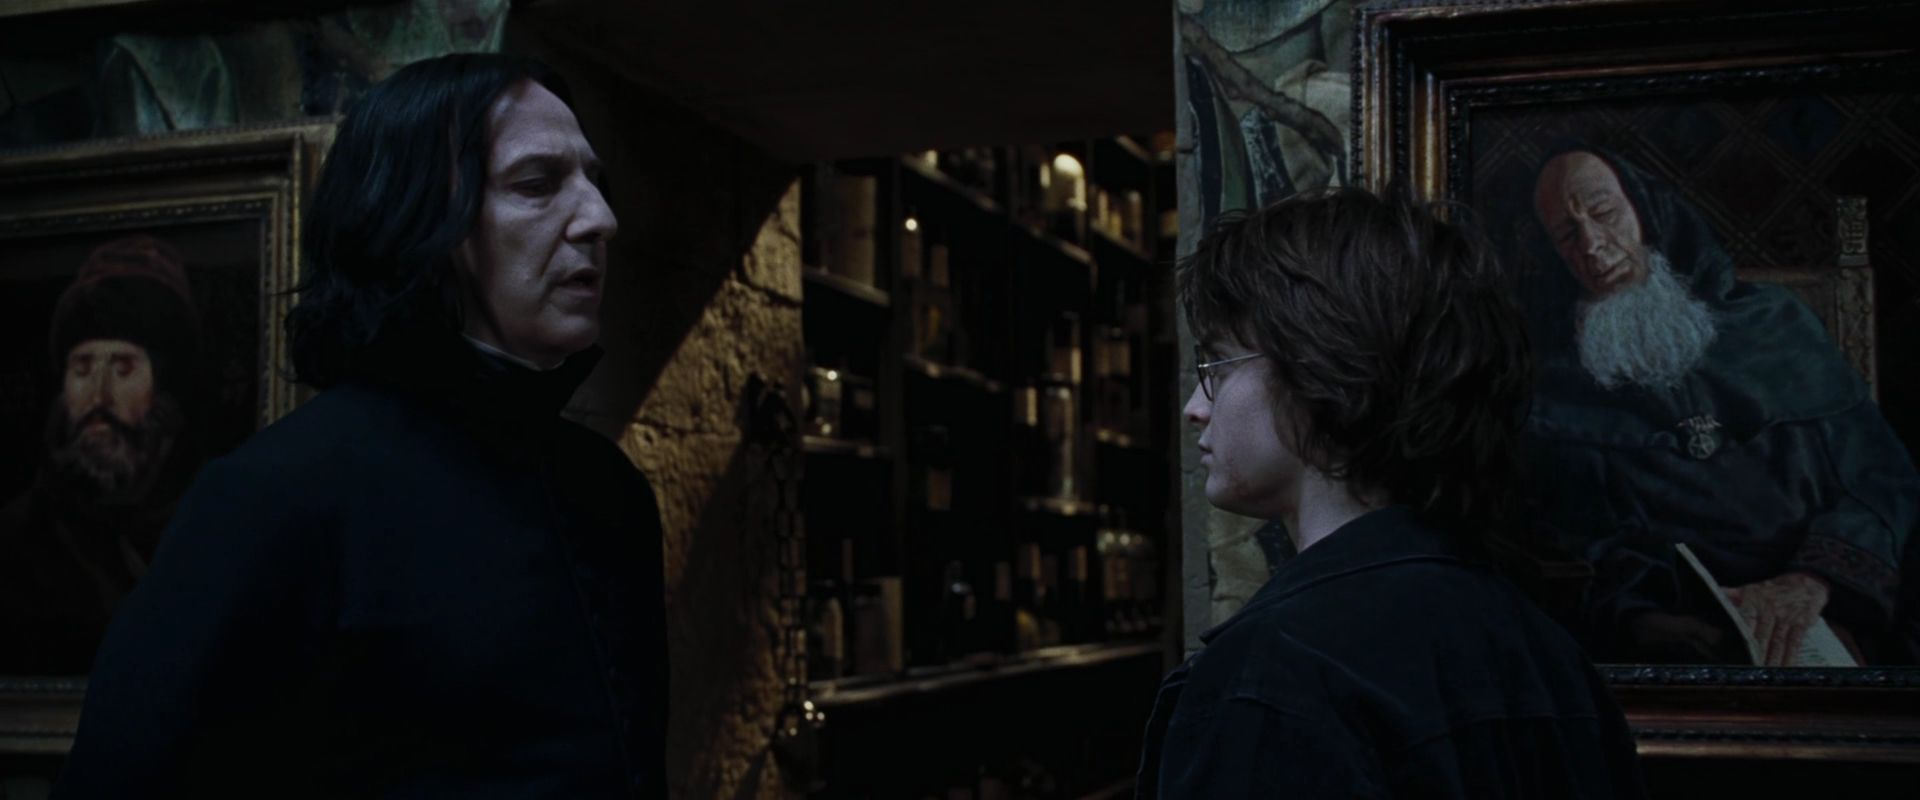 Harry Potter and the Goblet of Fire BluRay   Severus Snape Image 1920x800